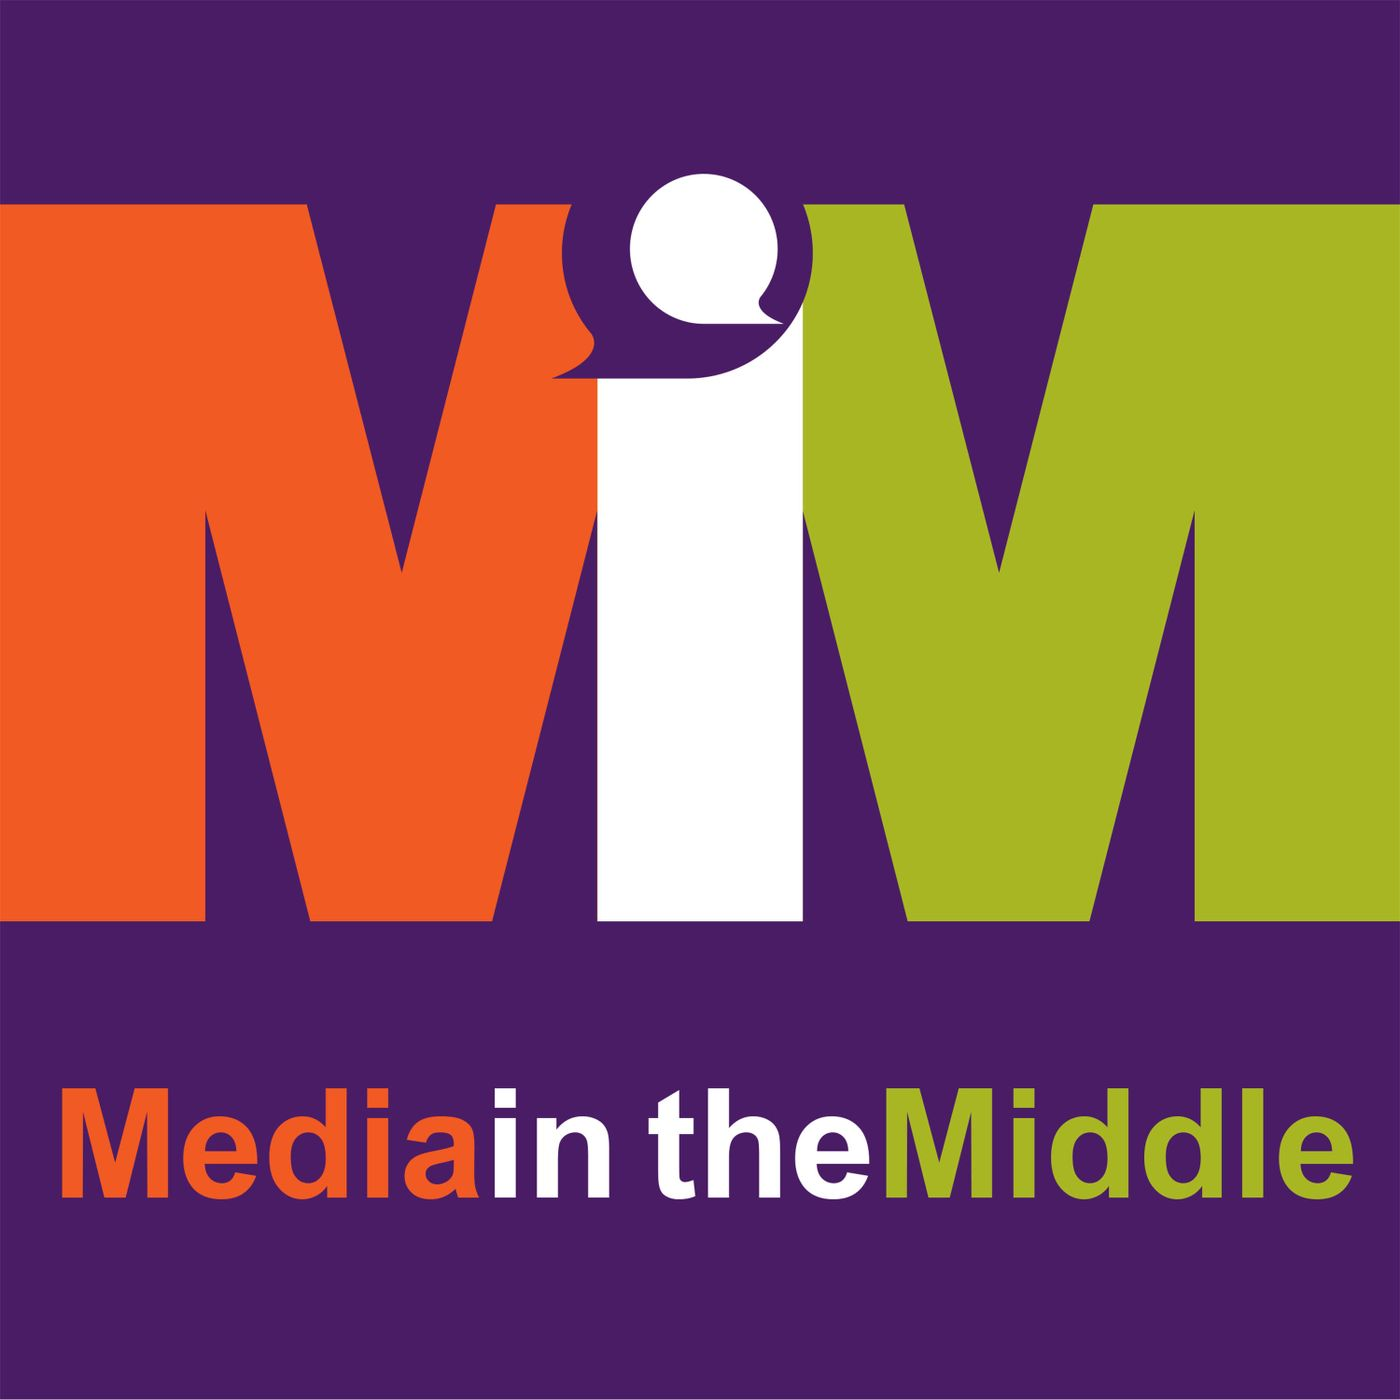 Media in the Middle